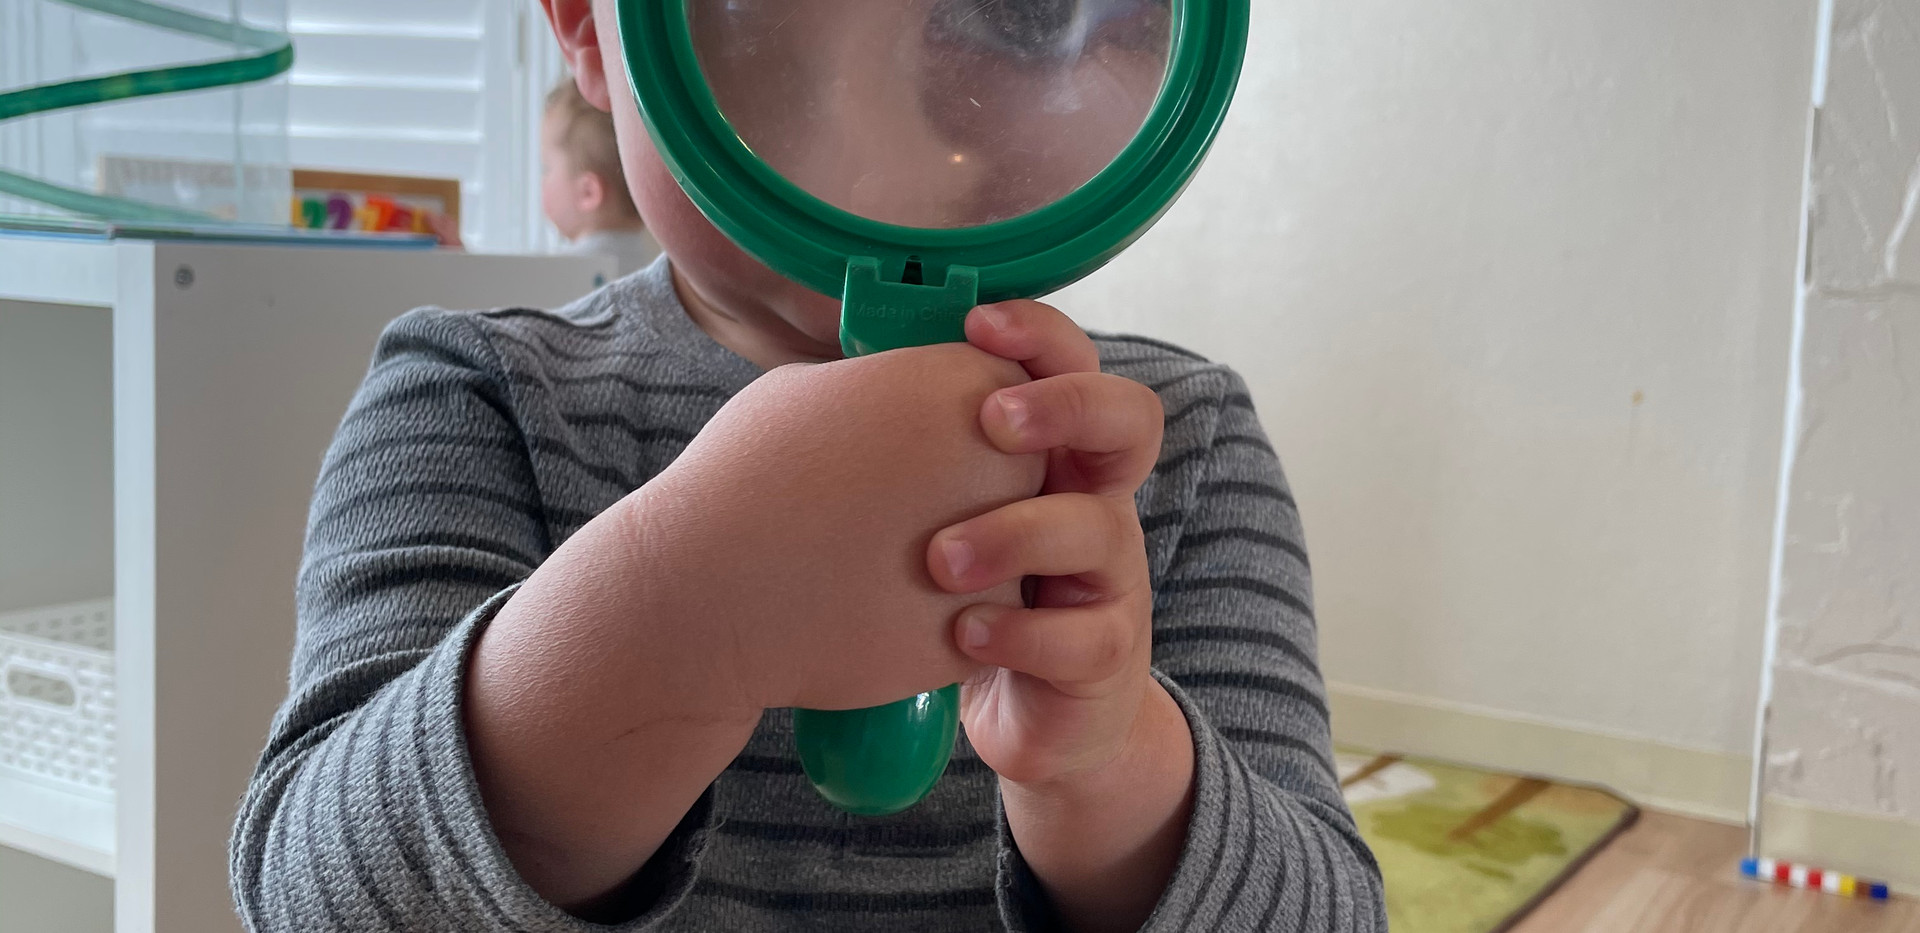 investigating the magnifying glass